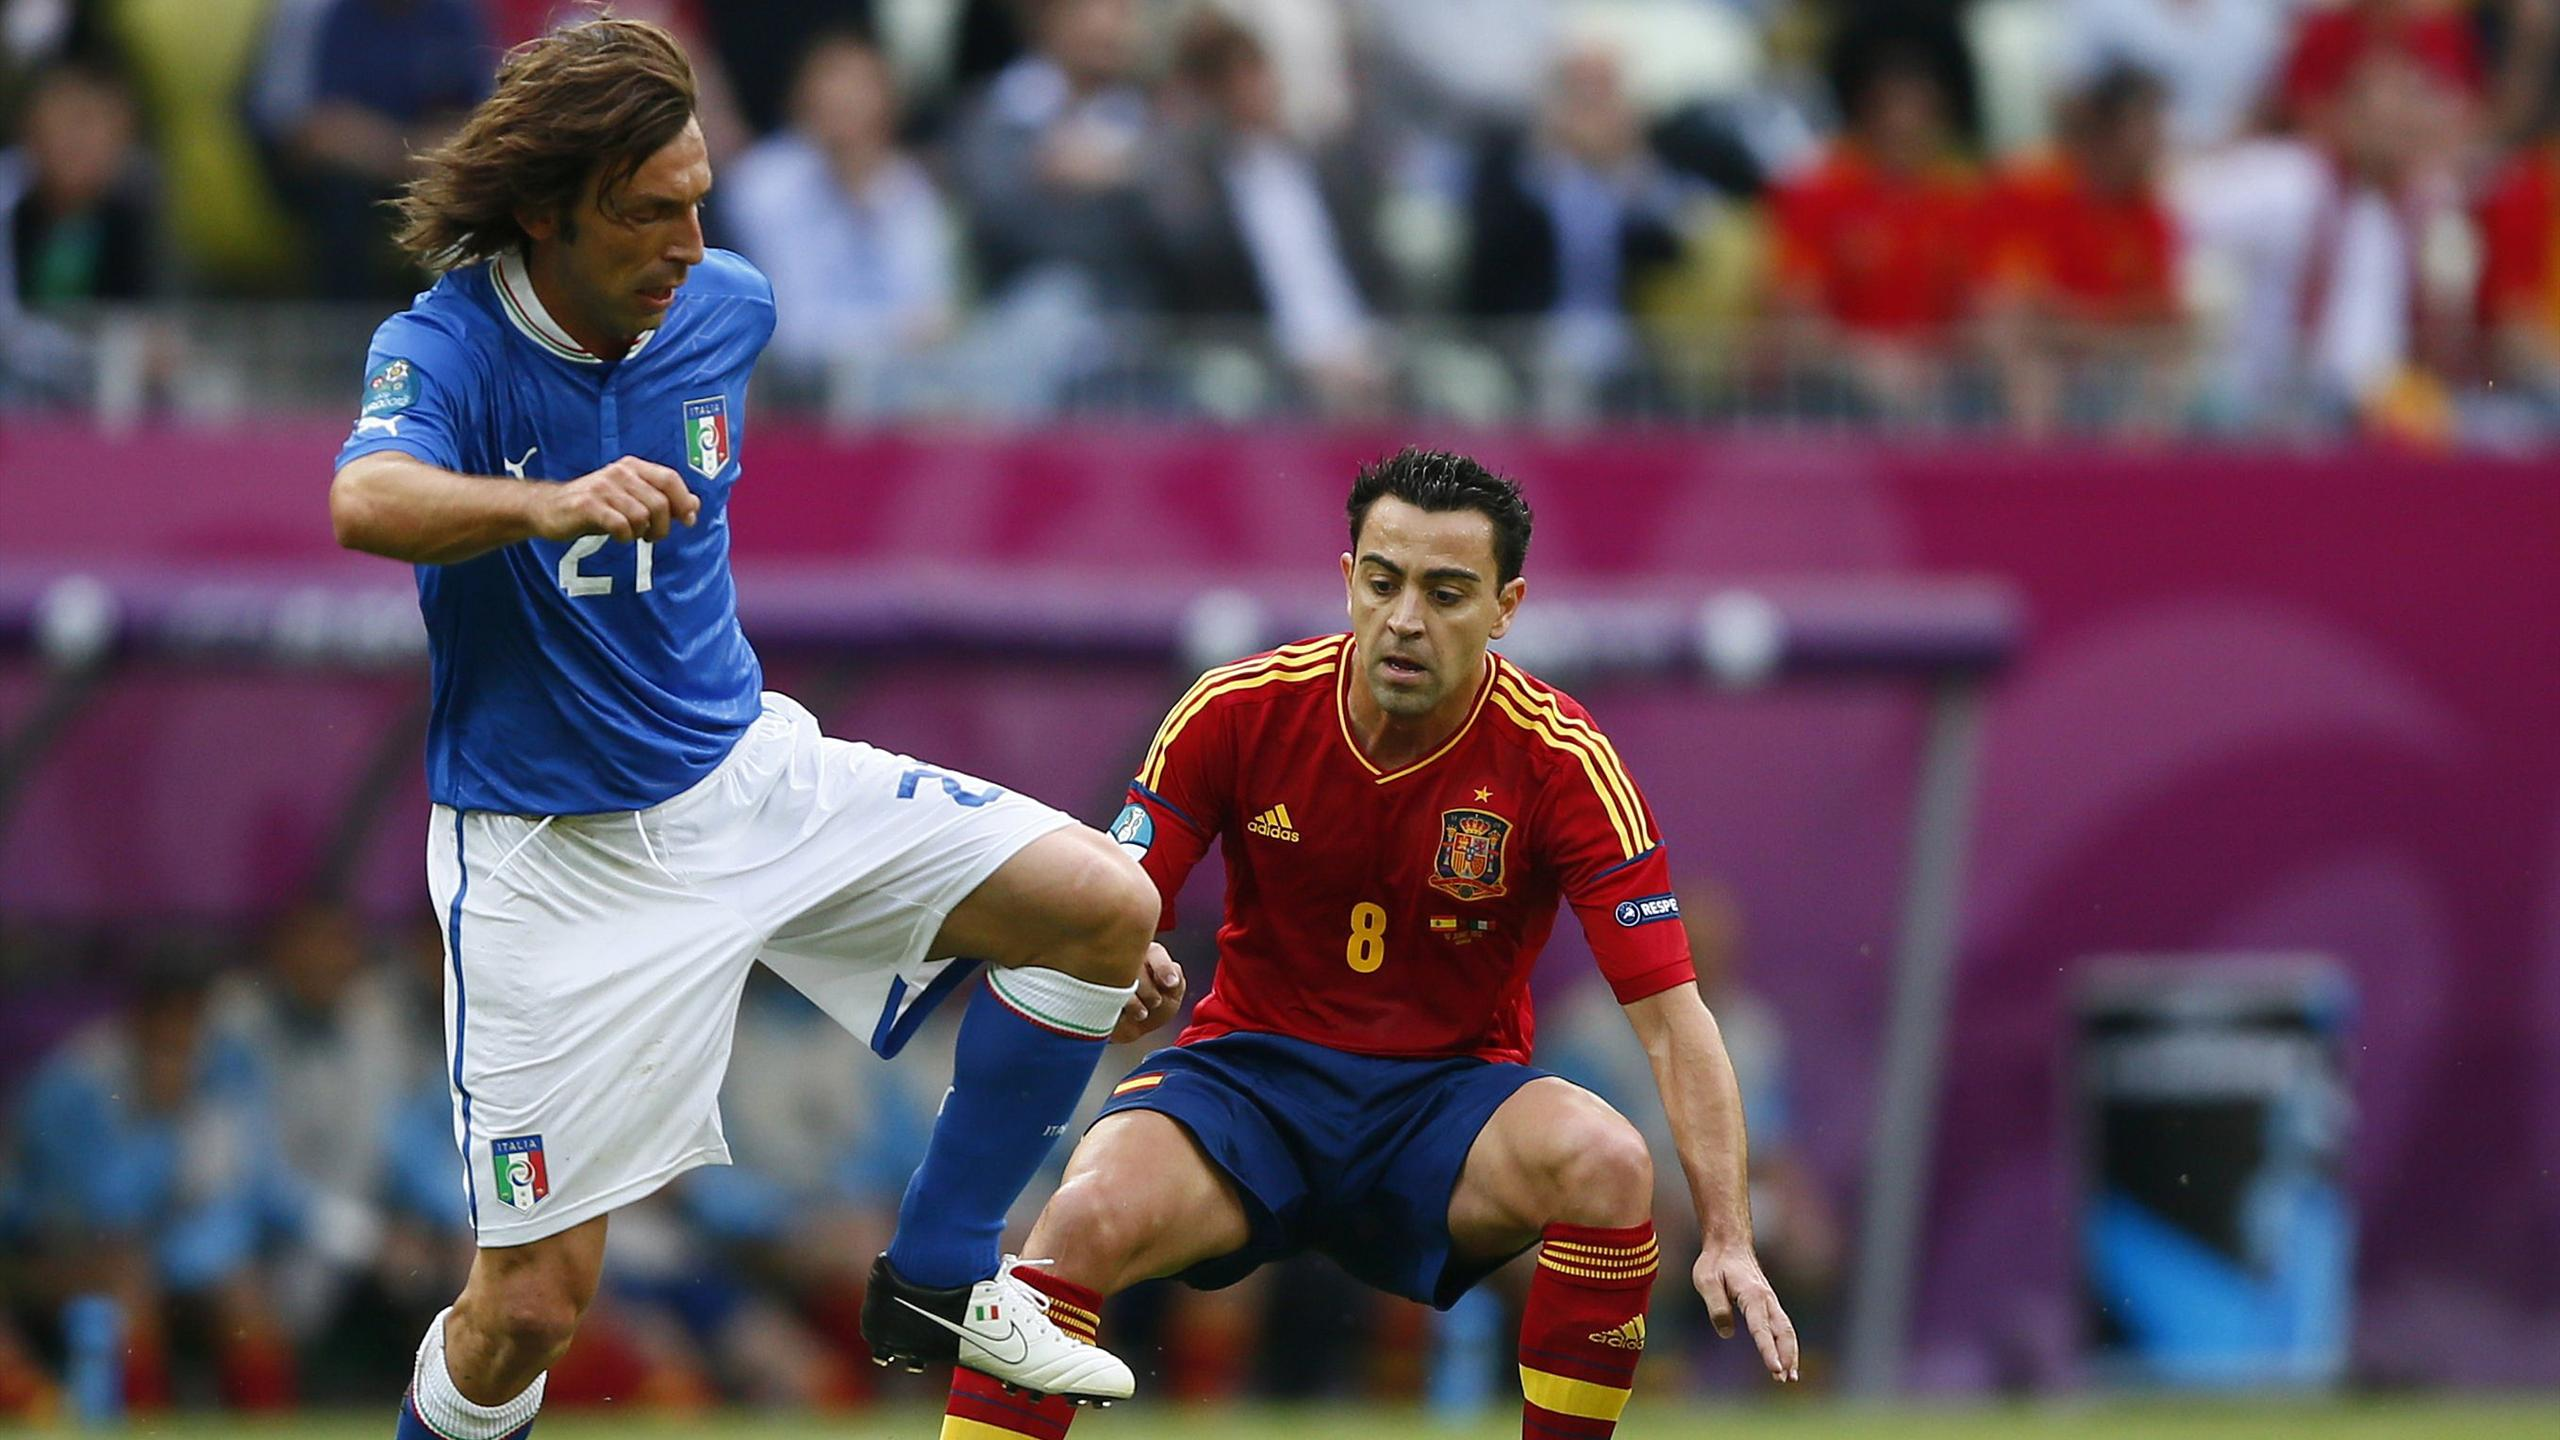 Italy's Andrea Pirlo (L) and Spain's Xavi Hernandez (R) challenge for the ball